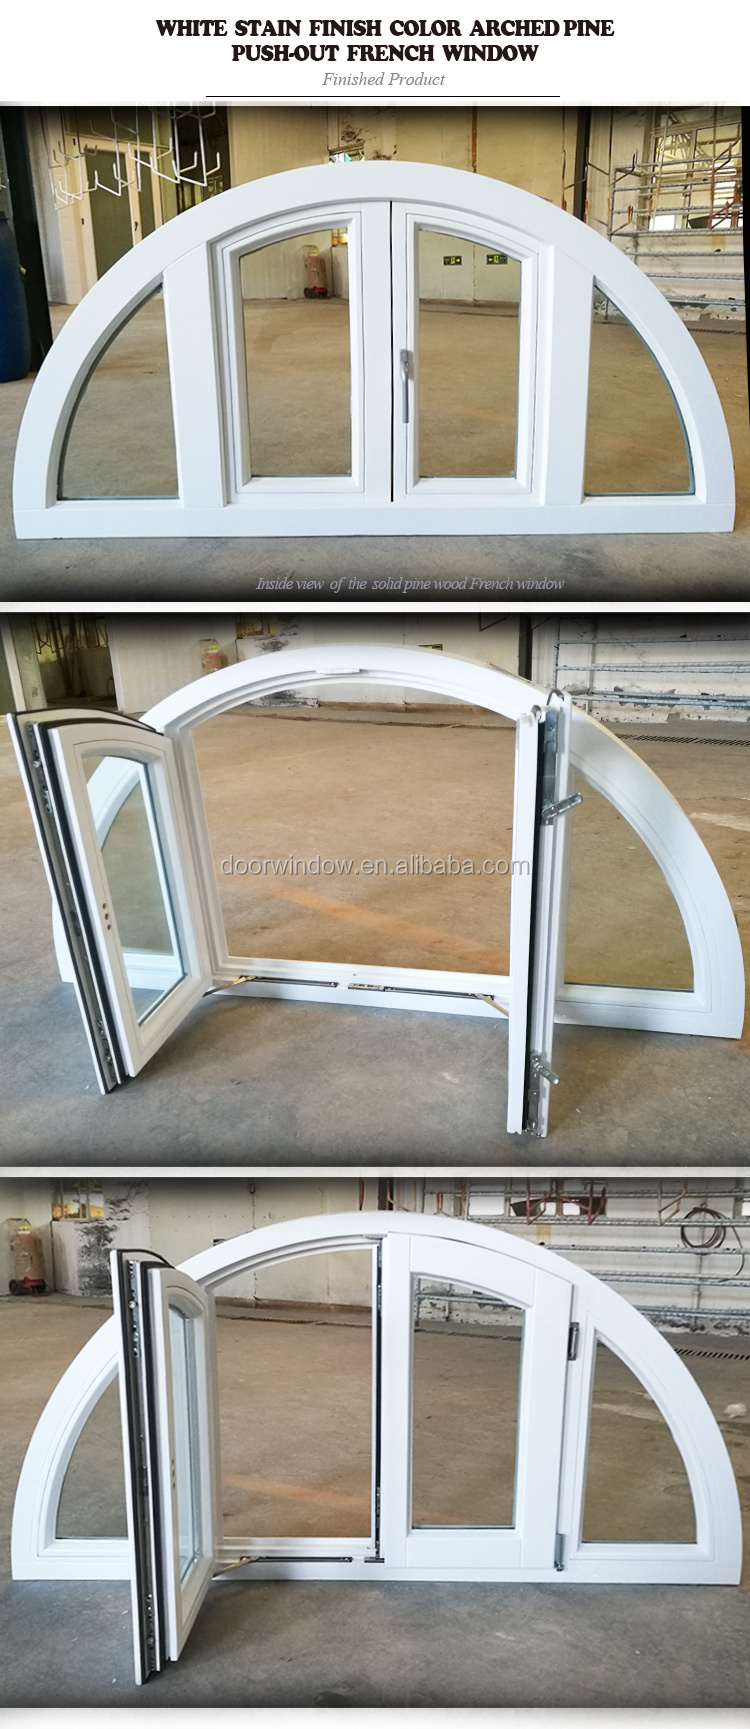 Arched wood window awning antique frame